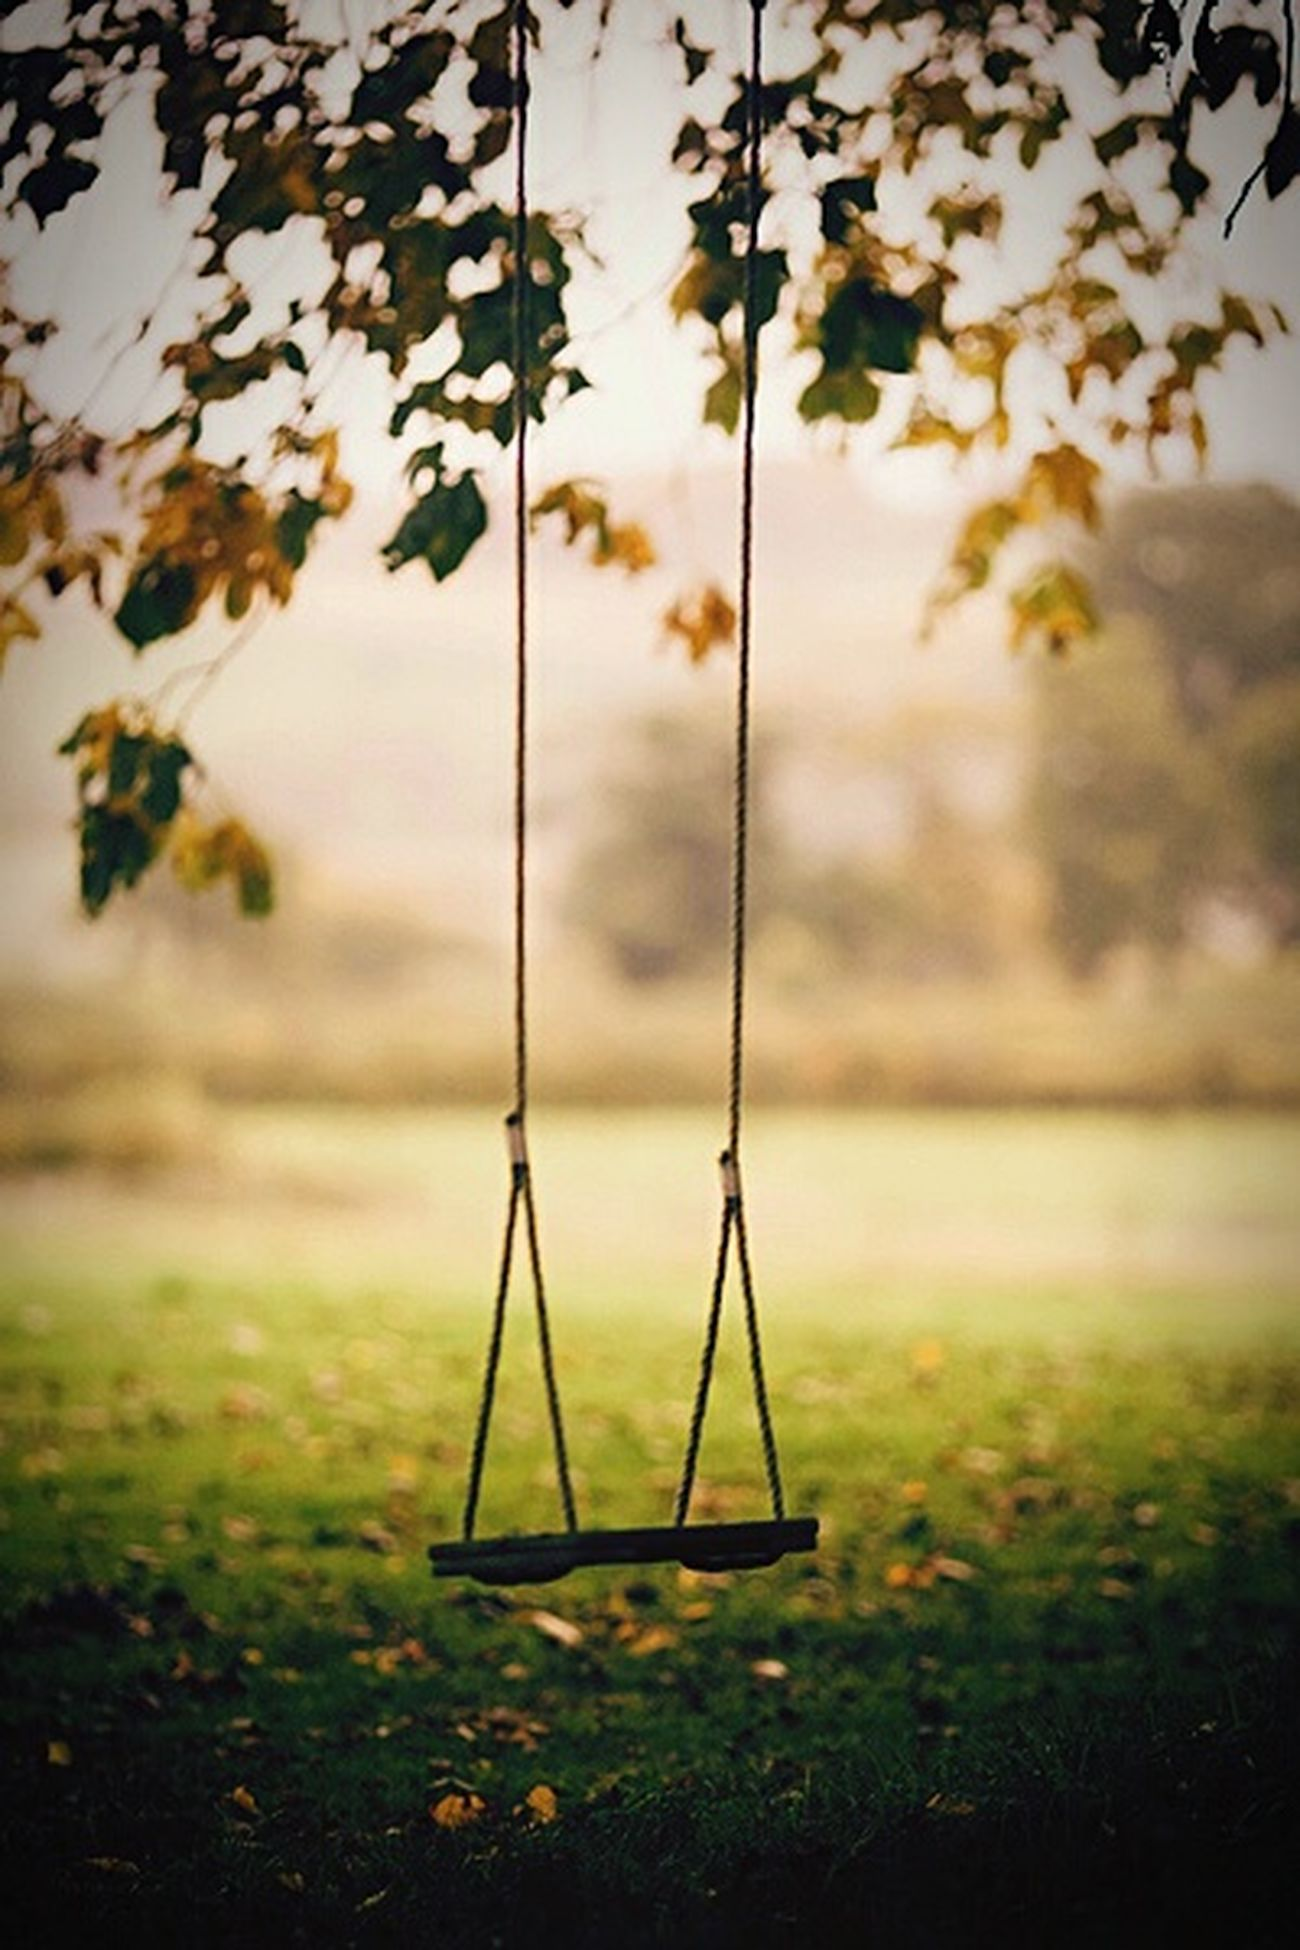 Lifeisbeautiful Enjoy Time Let's Swing Feeling Free